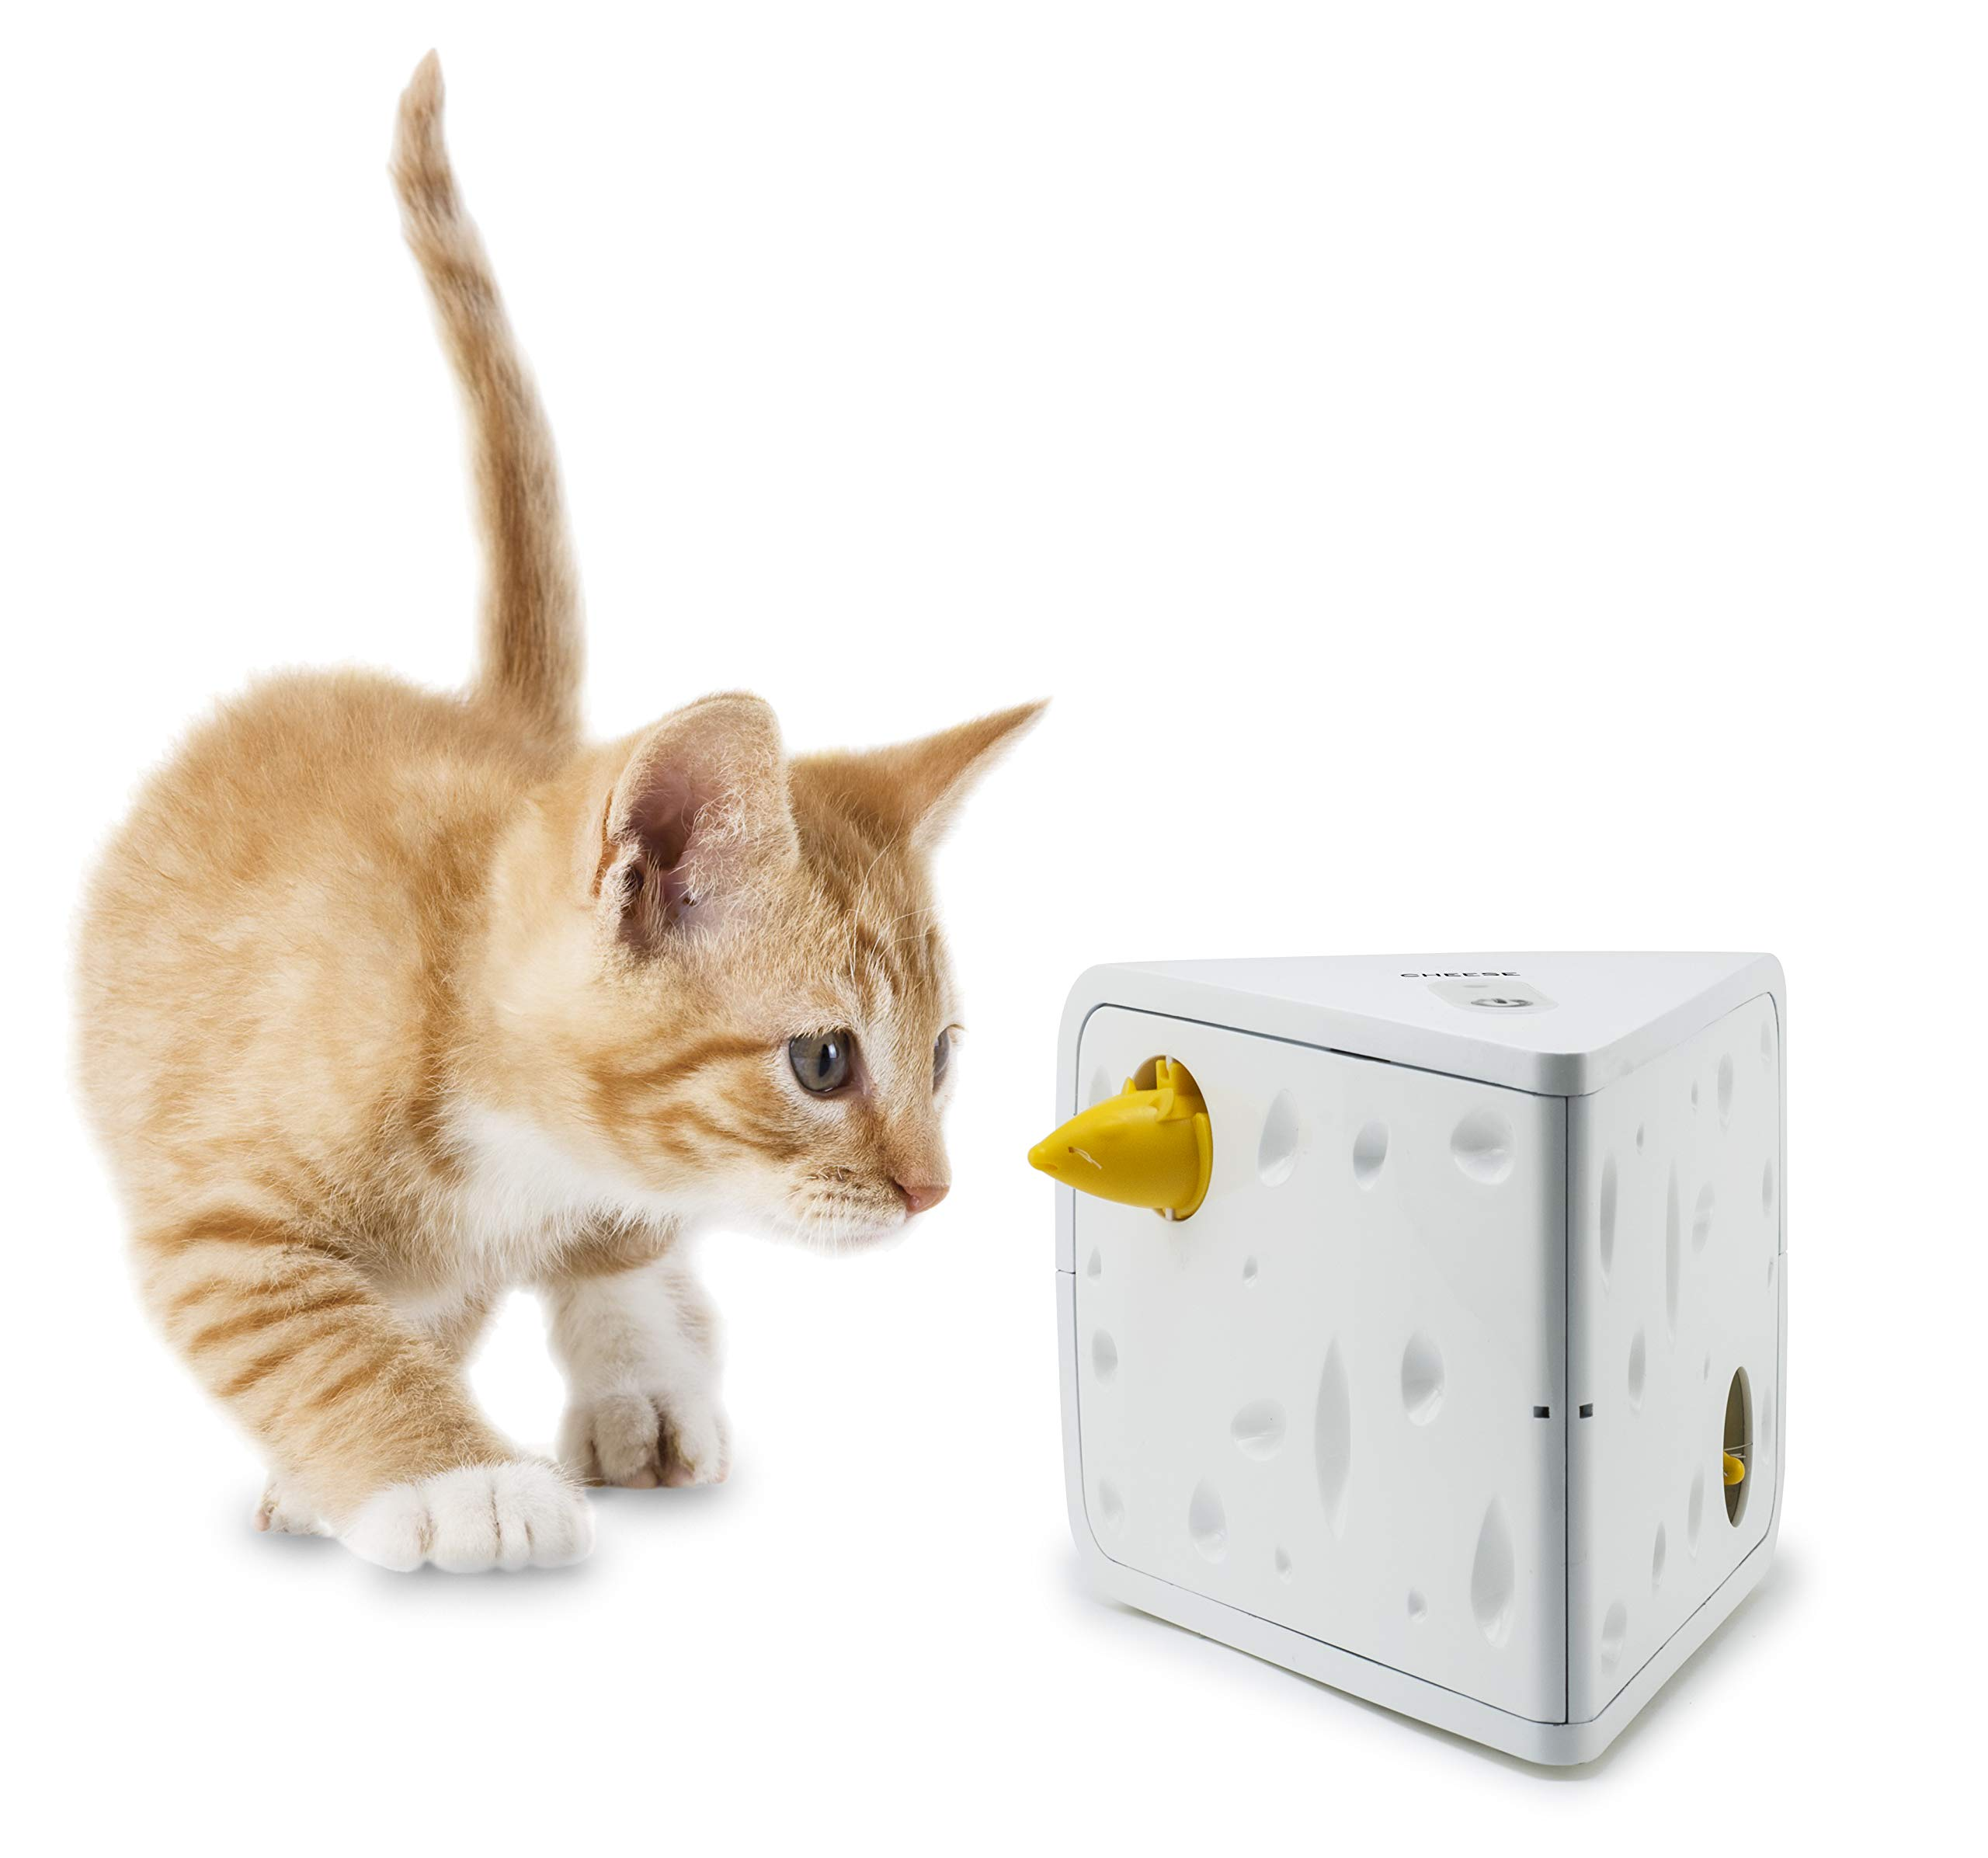 PetSafe Automatic Cheese Cat Toy, Interactive Electronic Mouse Hunt, Durable Toy with Multiple Play Modes, Fun for Kittens to Pounce and Play by PetSafe